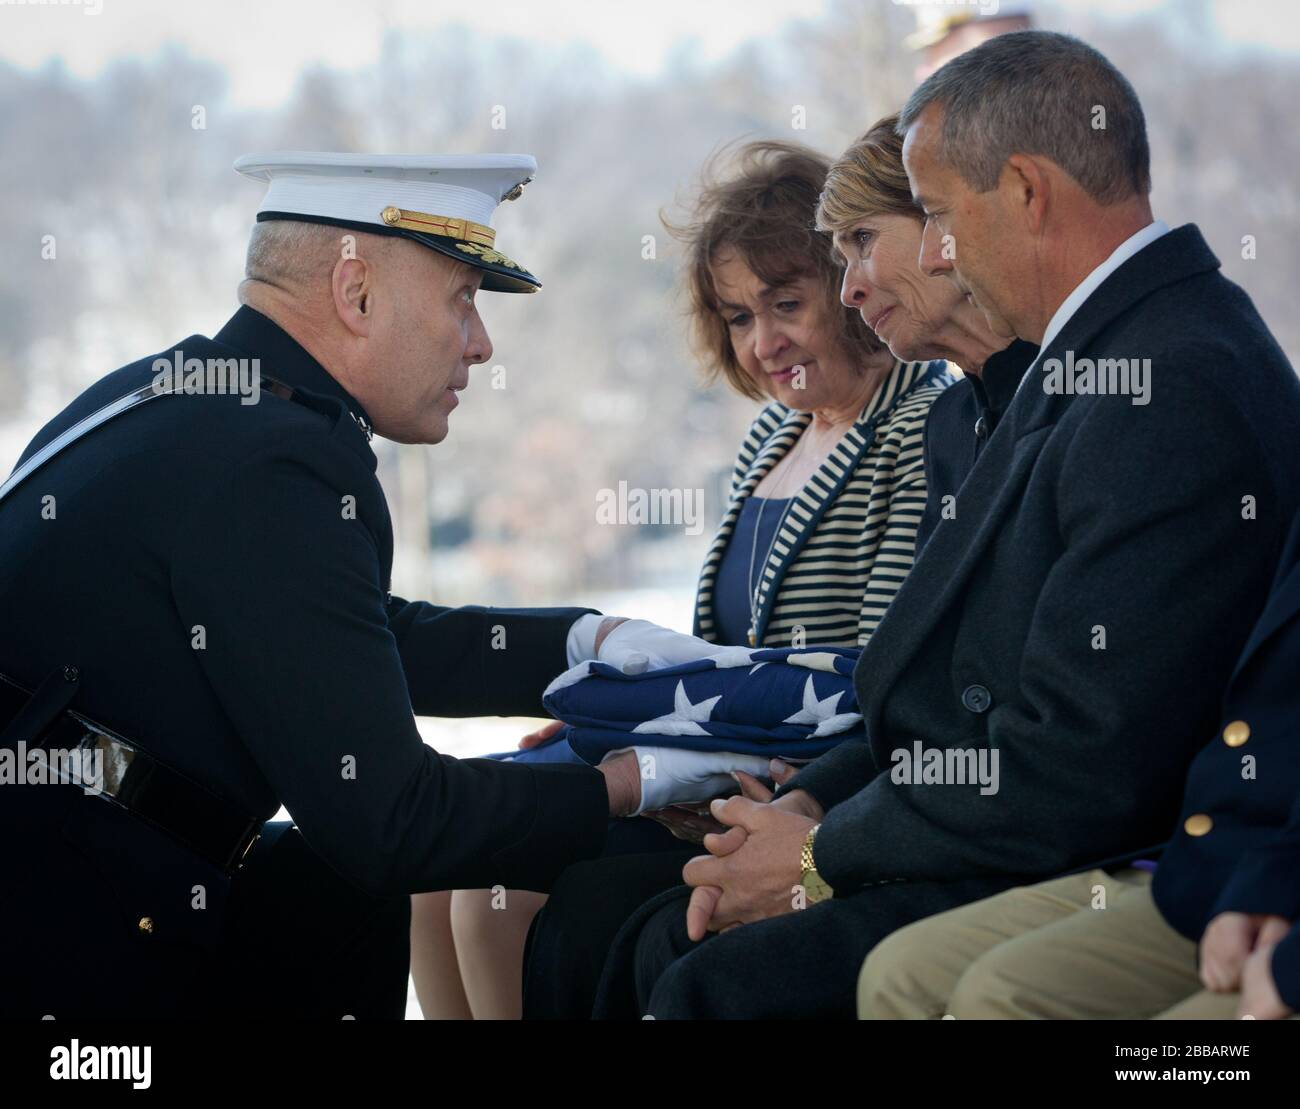 """""""The Assistant Commandant of the Marine Corps, Gen. John M. Paxton, Jr., his wife Debbie, and Mrs. Bonnie Amos attend the funeral service for Retired Colonel Charles Waterhouse at Arlington National Cemetary, Arlington, VA, Feb. 19, 2014. Col. Waterhouse was a combat artist and was seriously injured during the first wave of Iwo Jima. He suffered from sever nerve damage in his left hand but was still able to paint with his right and continued though out his life to paint artwork up until three weeks before he passed away. (U.S. Marine Corps photo by Cpl. Tia Dufour/Released); 19 February 2014, Stock Photo"""